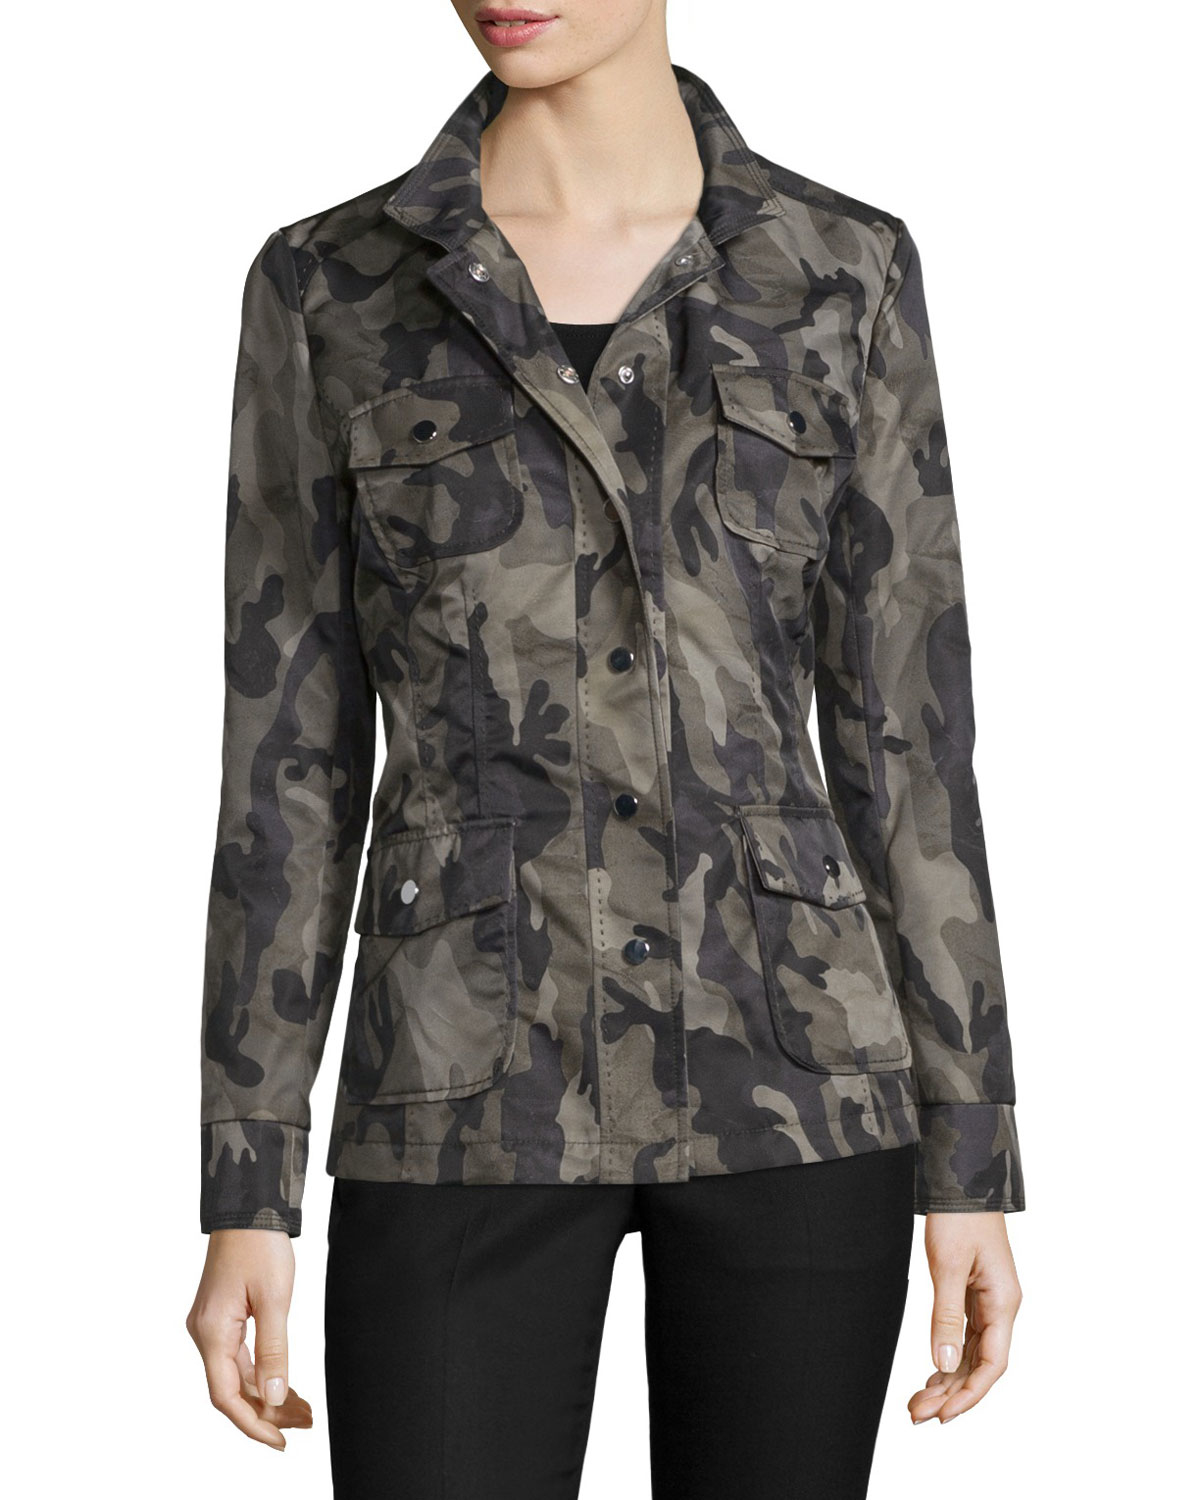 Jane post Crepe Camouflage-Print Jacket in Green